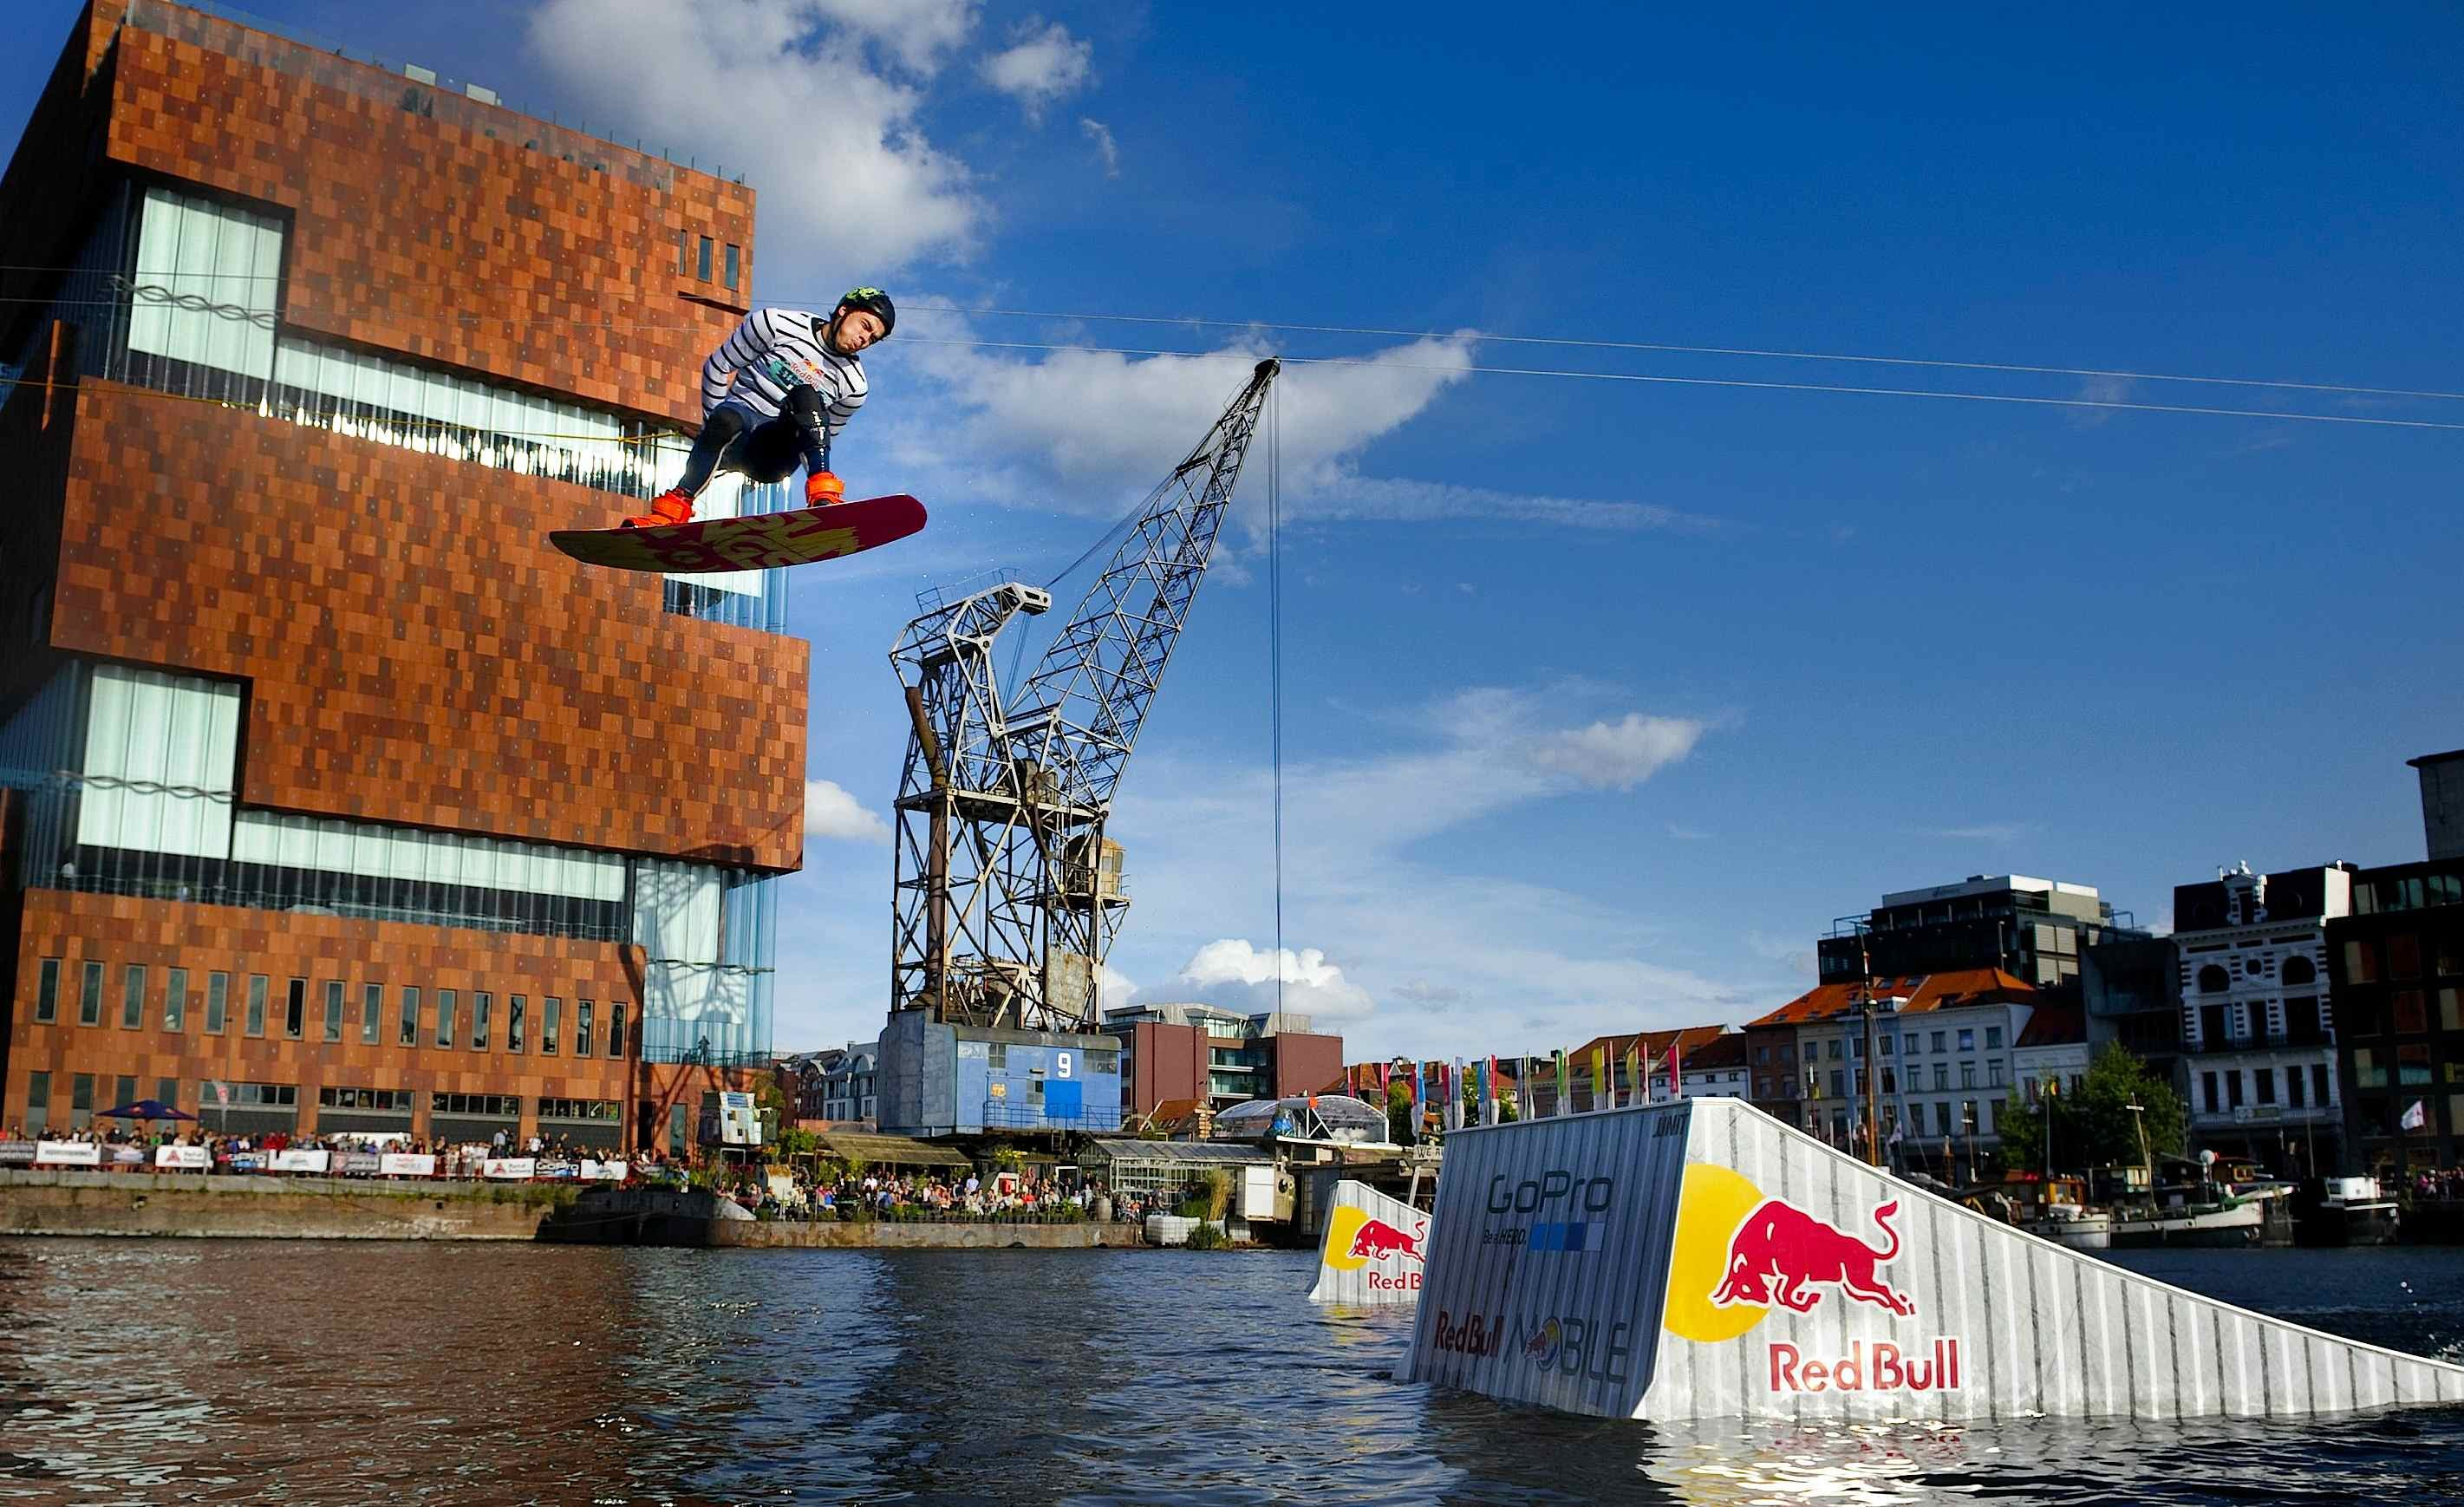 Urban Ocean Wakeboarding in Belgium by Red Bull